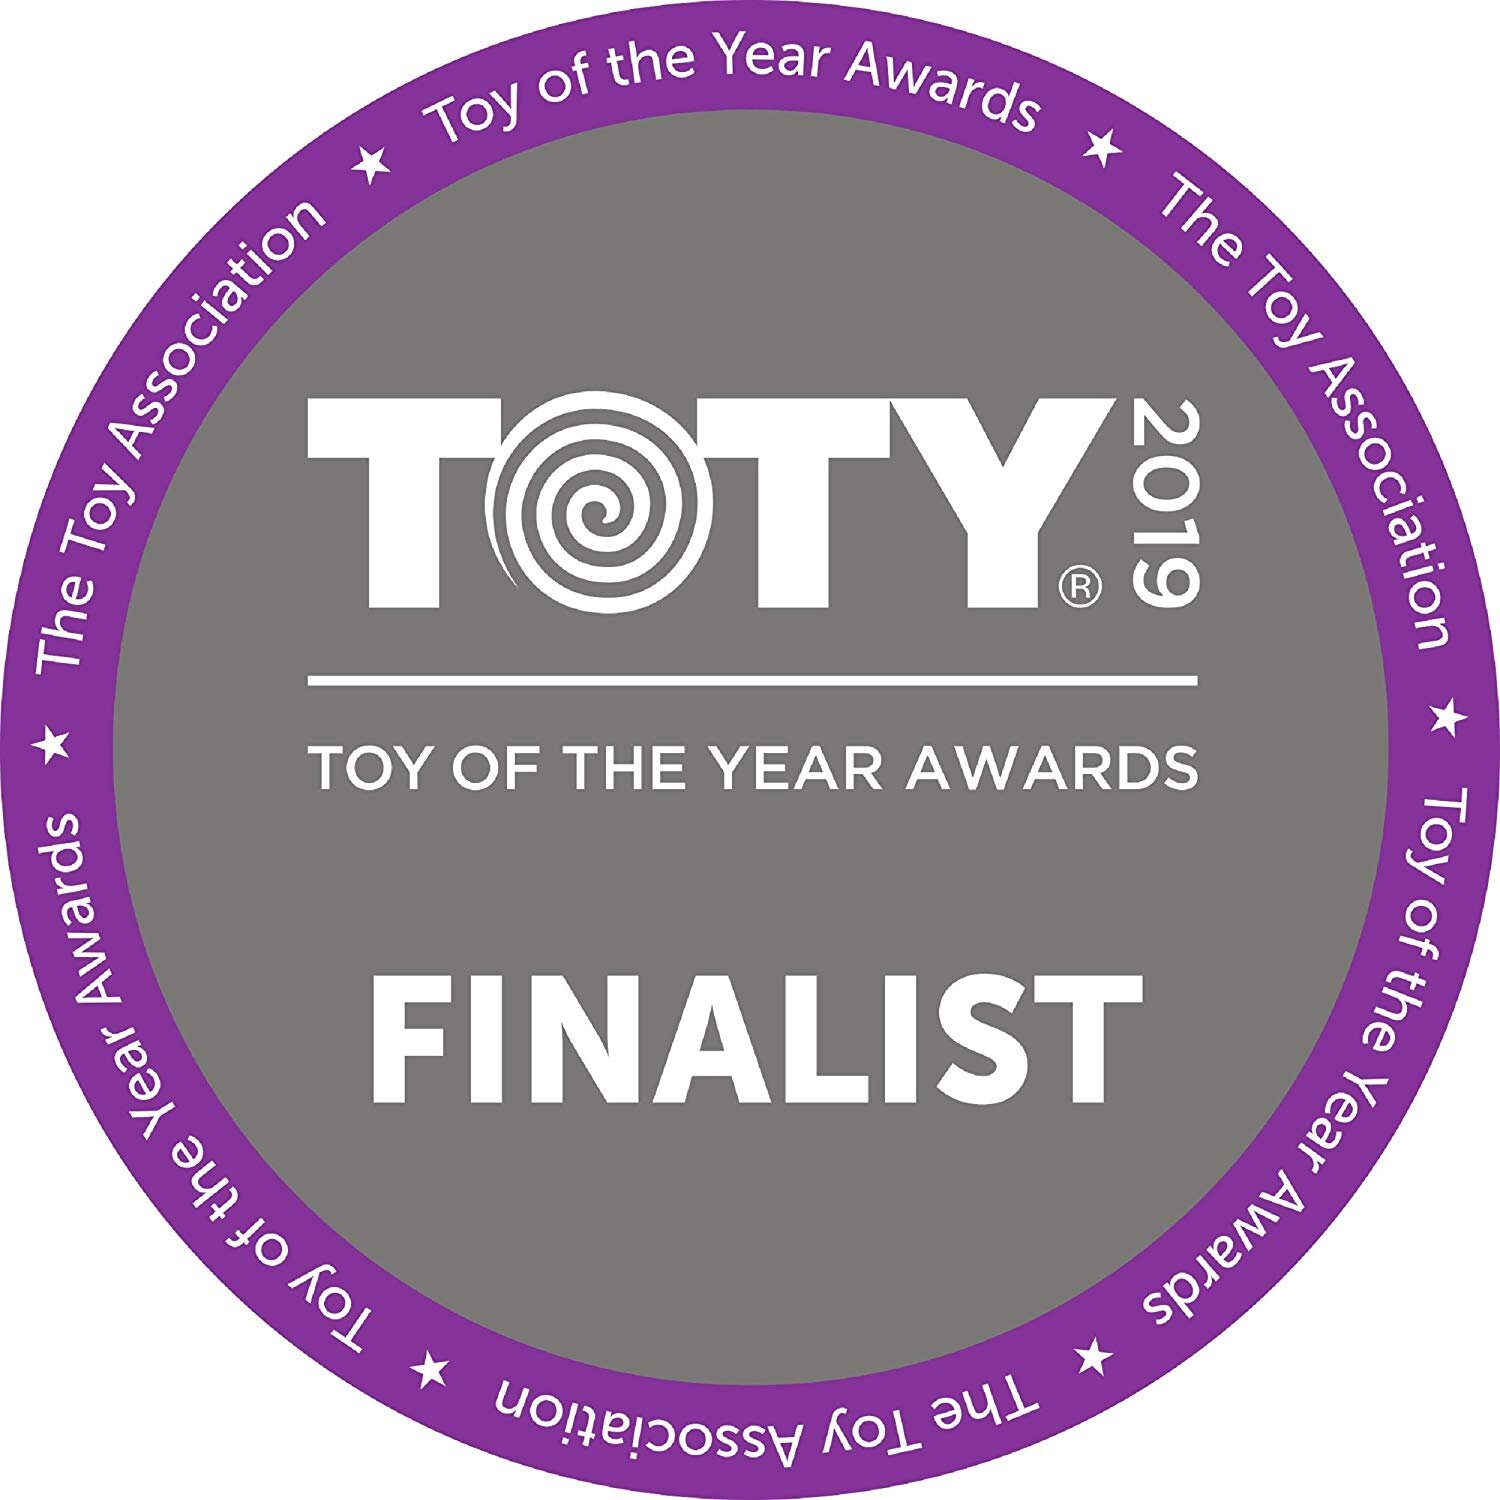 - Toy of the Year 2019 Finalist